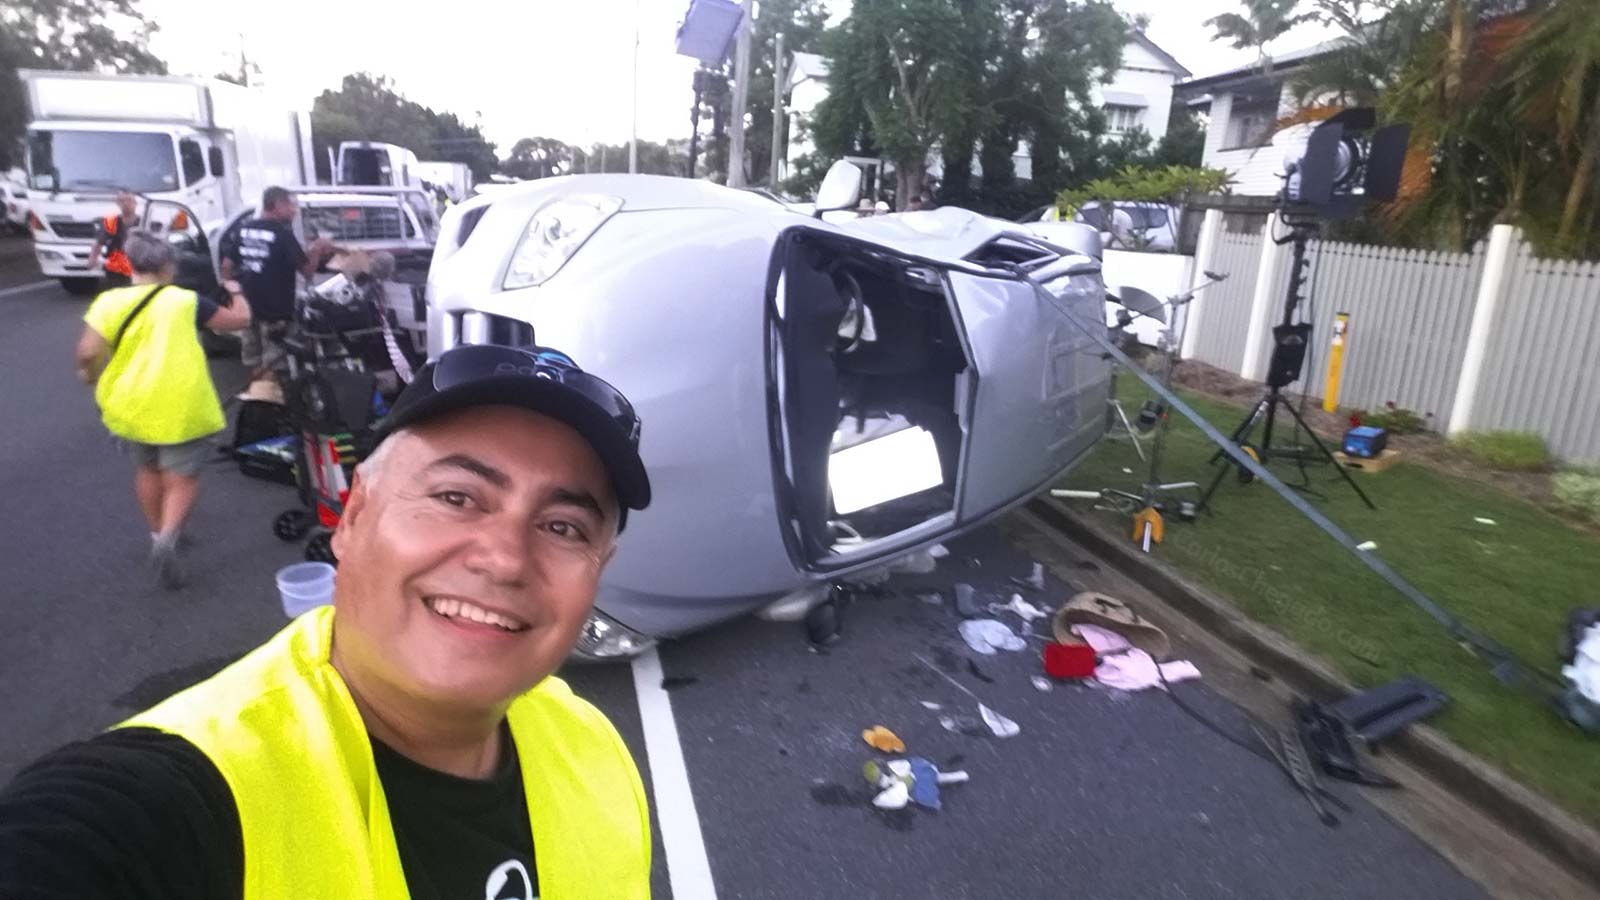 Carlos Chegado at the TMR Safe DriVR car crash setup